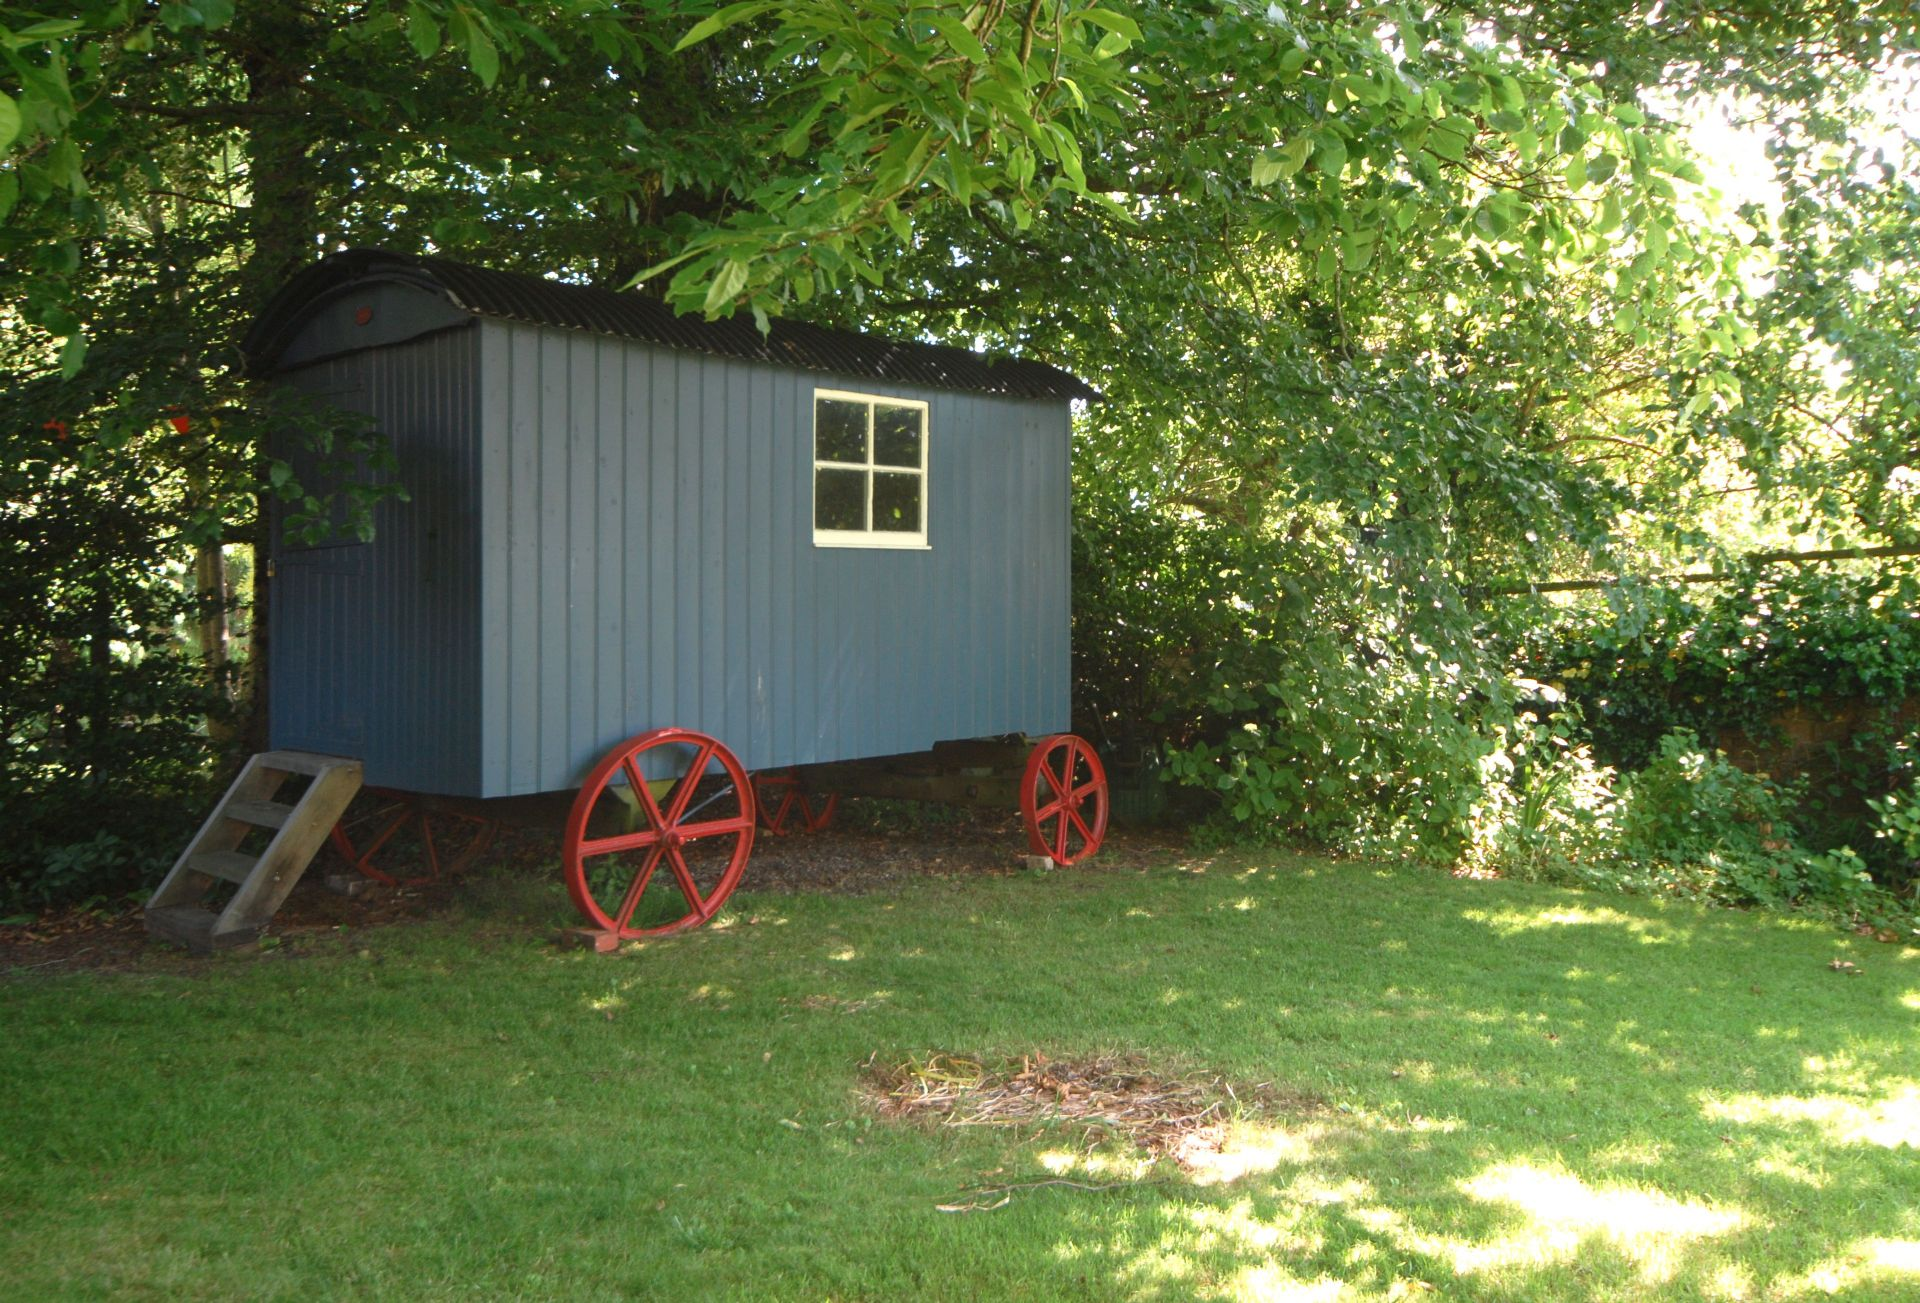 A view of the traditional shepherd's hut